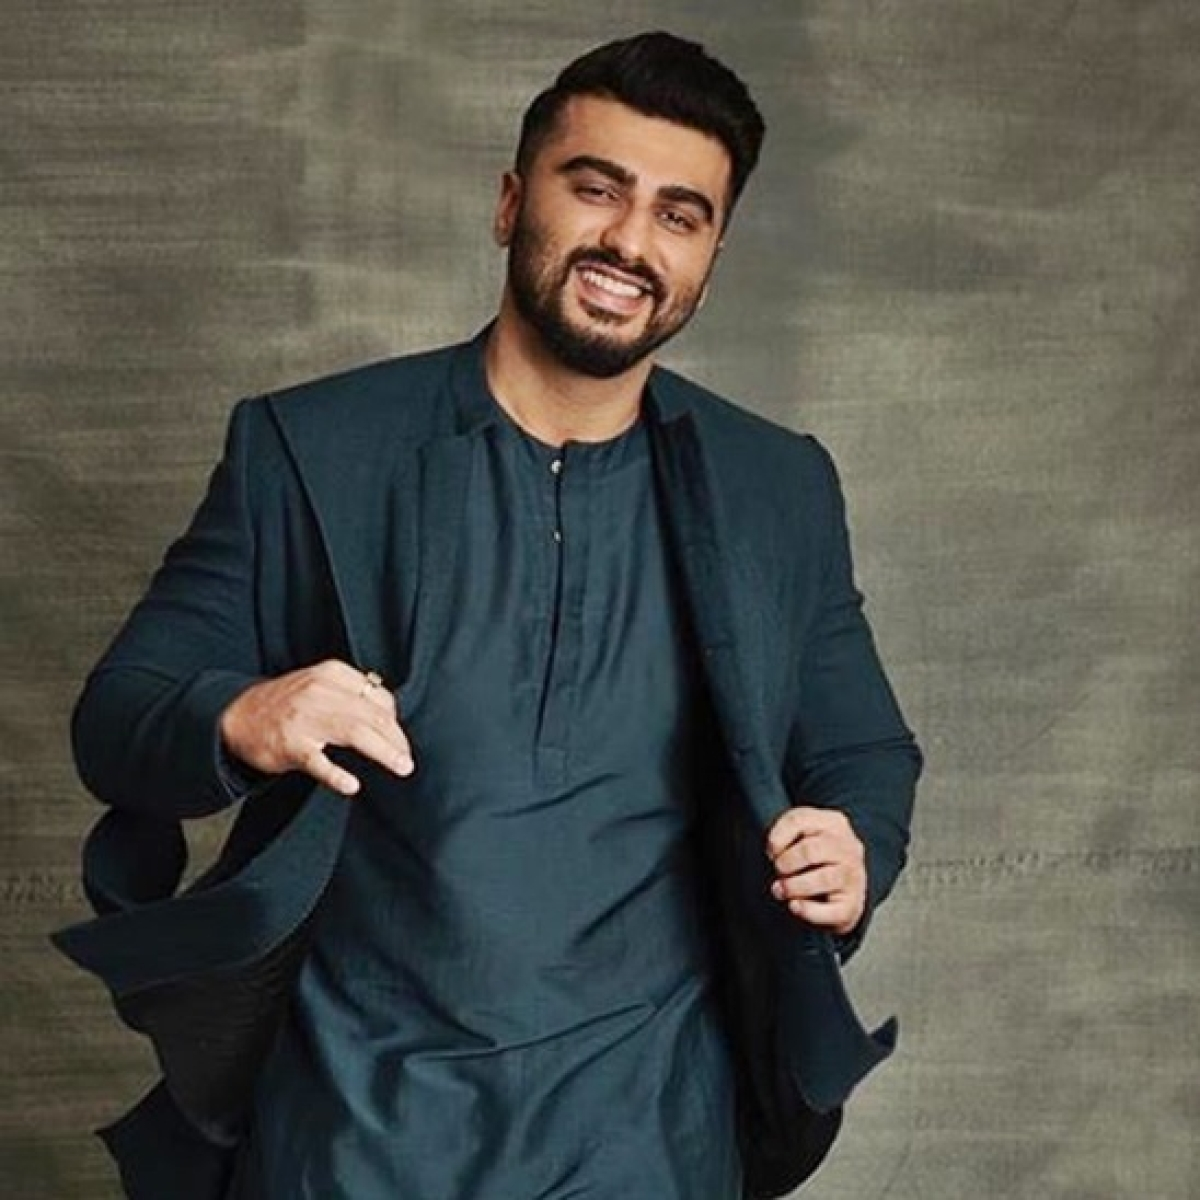 Arjun Kapoor to start working on dad Boney Kapoor's film